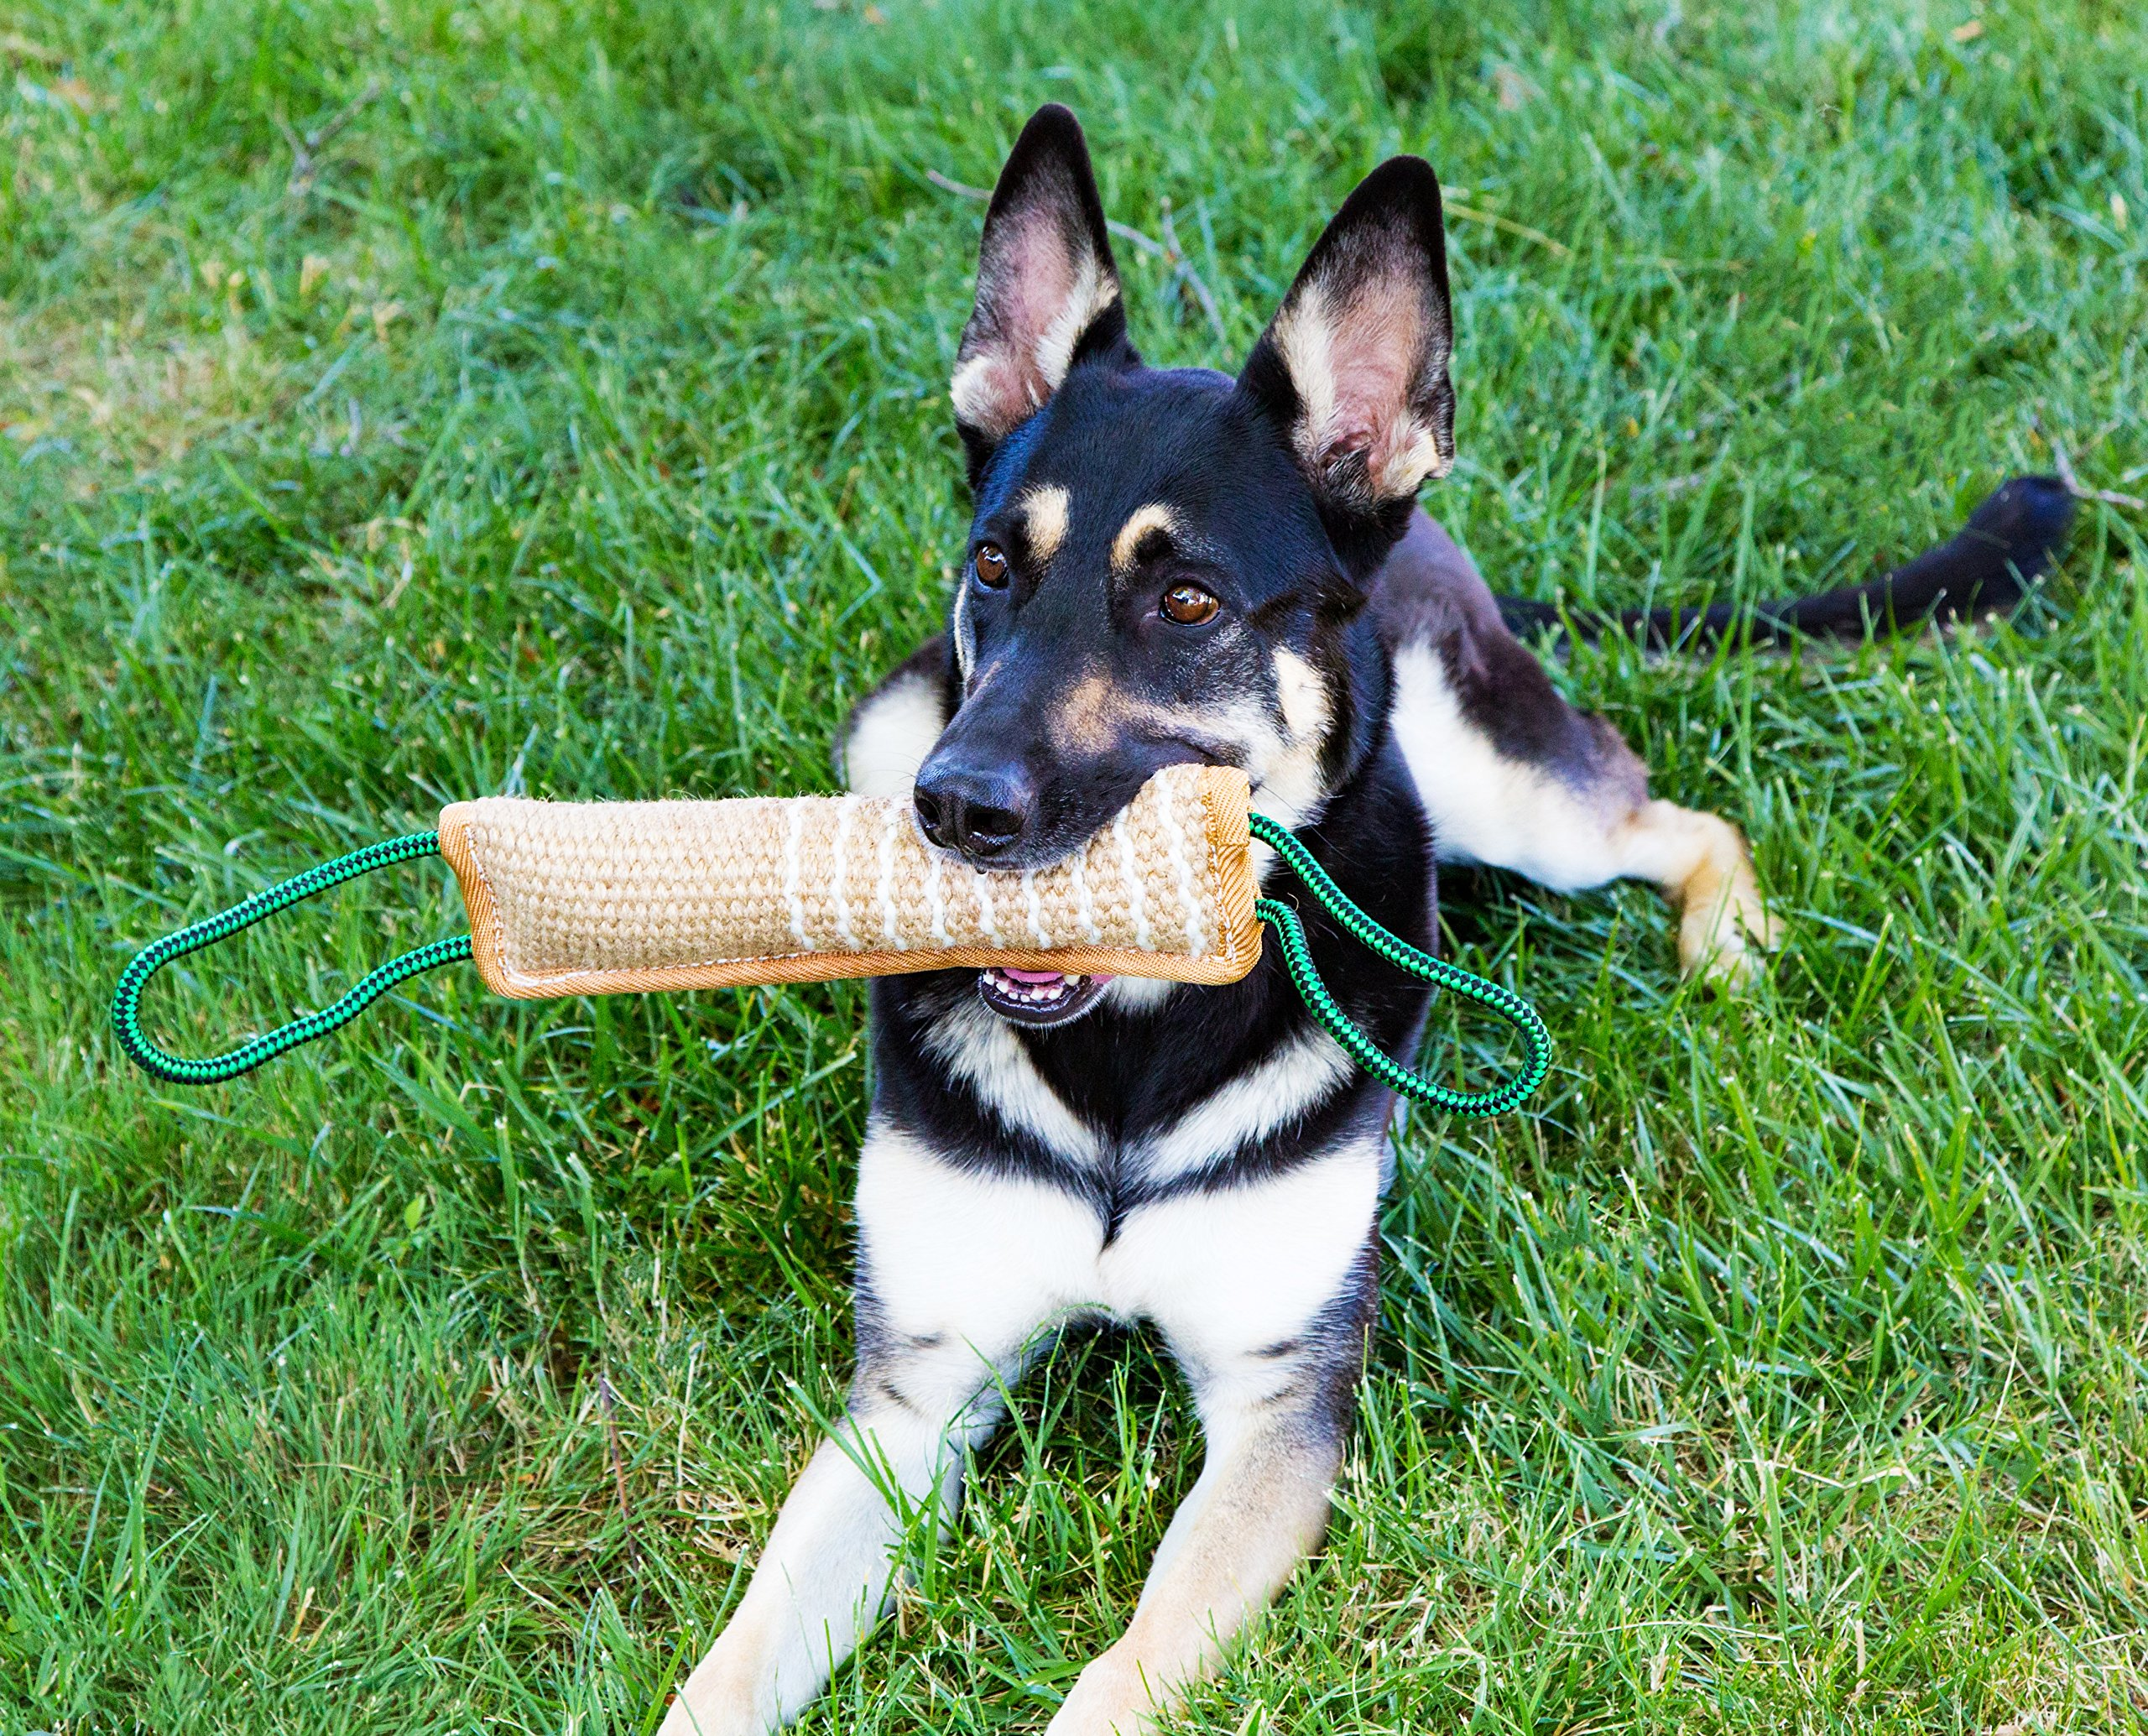 K9to5 Gear Dog Tug Toy Bite Pillow - Strong Dog Pull Toy with Tough Jute, 2 Rope Handles by K9to5 Gear (Image #3)